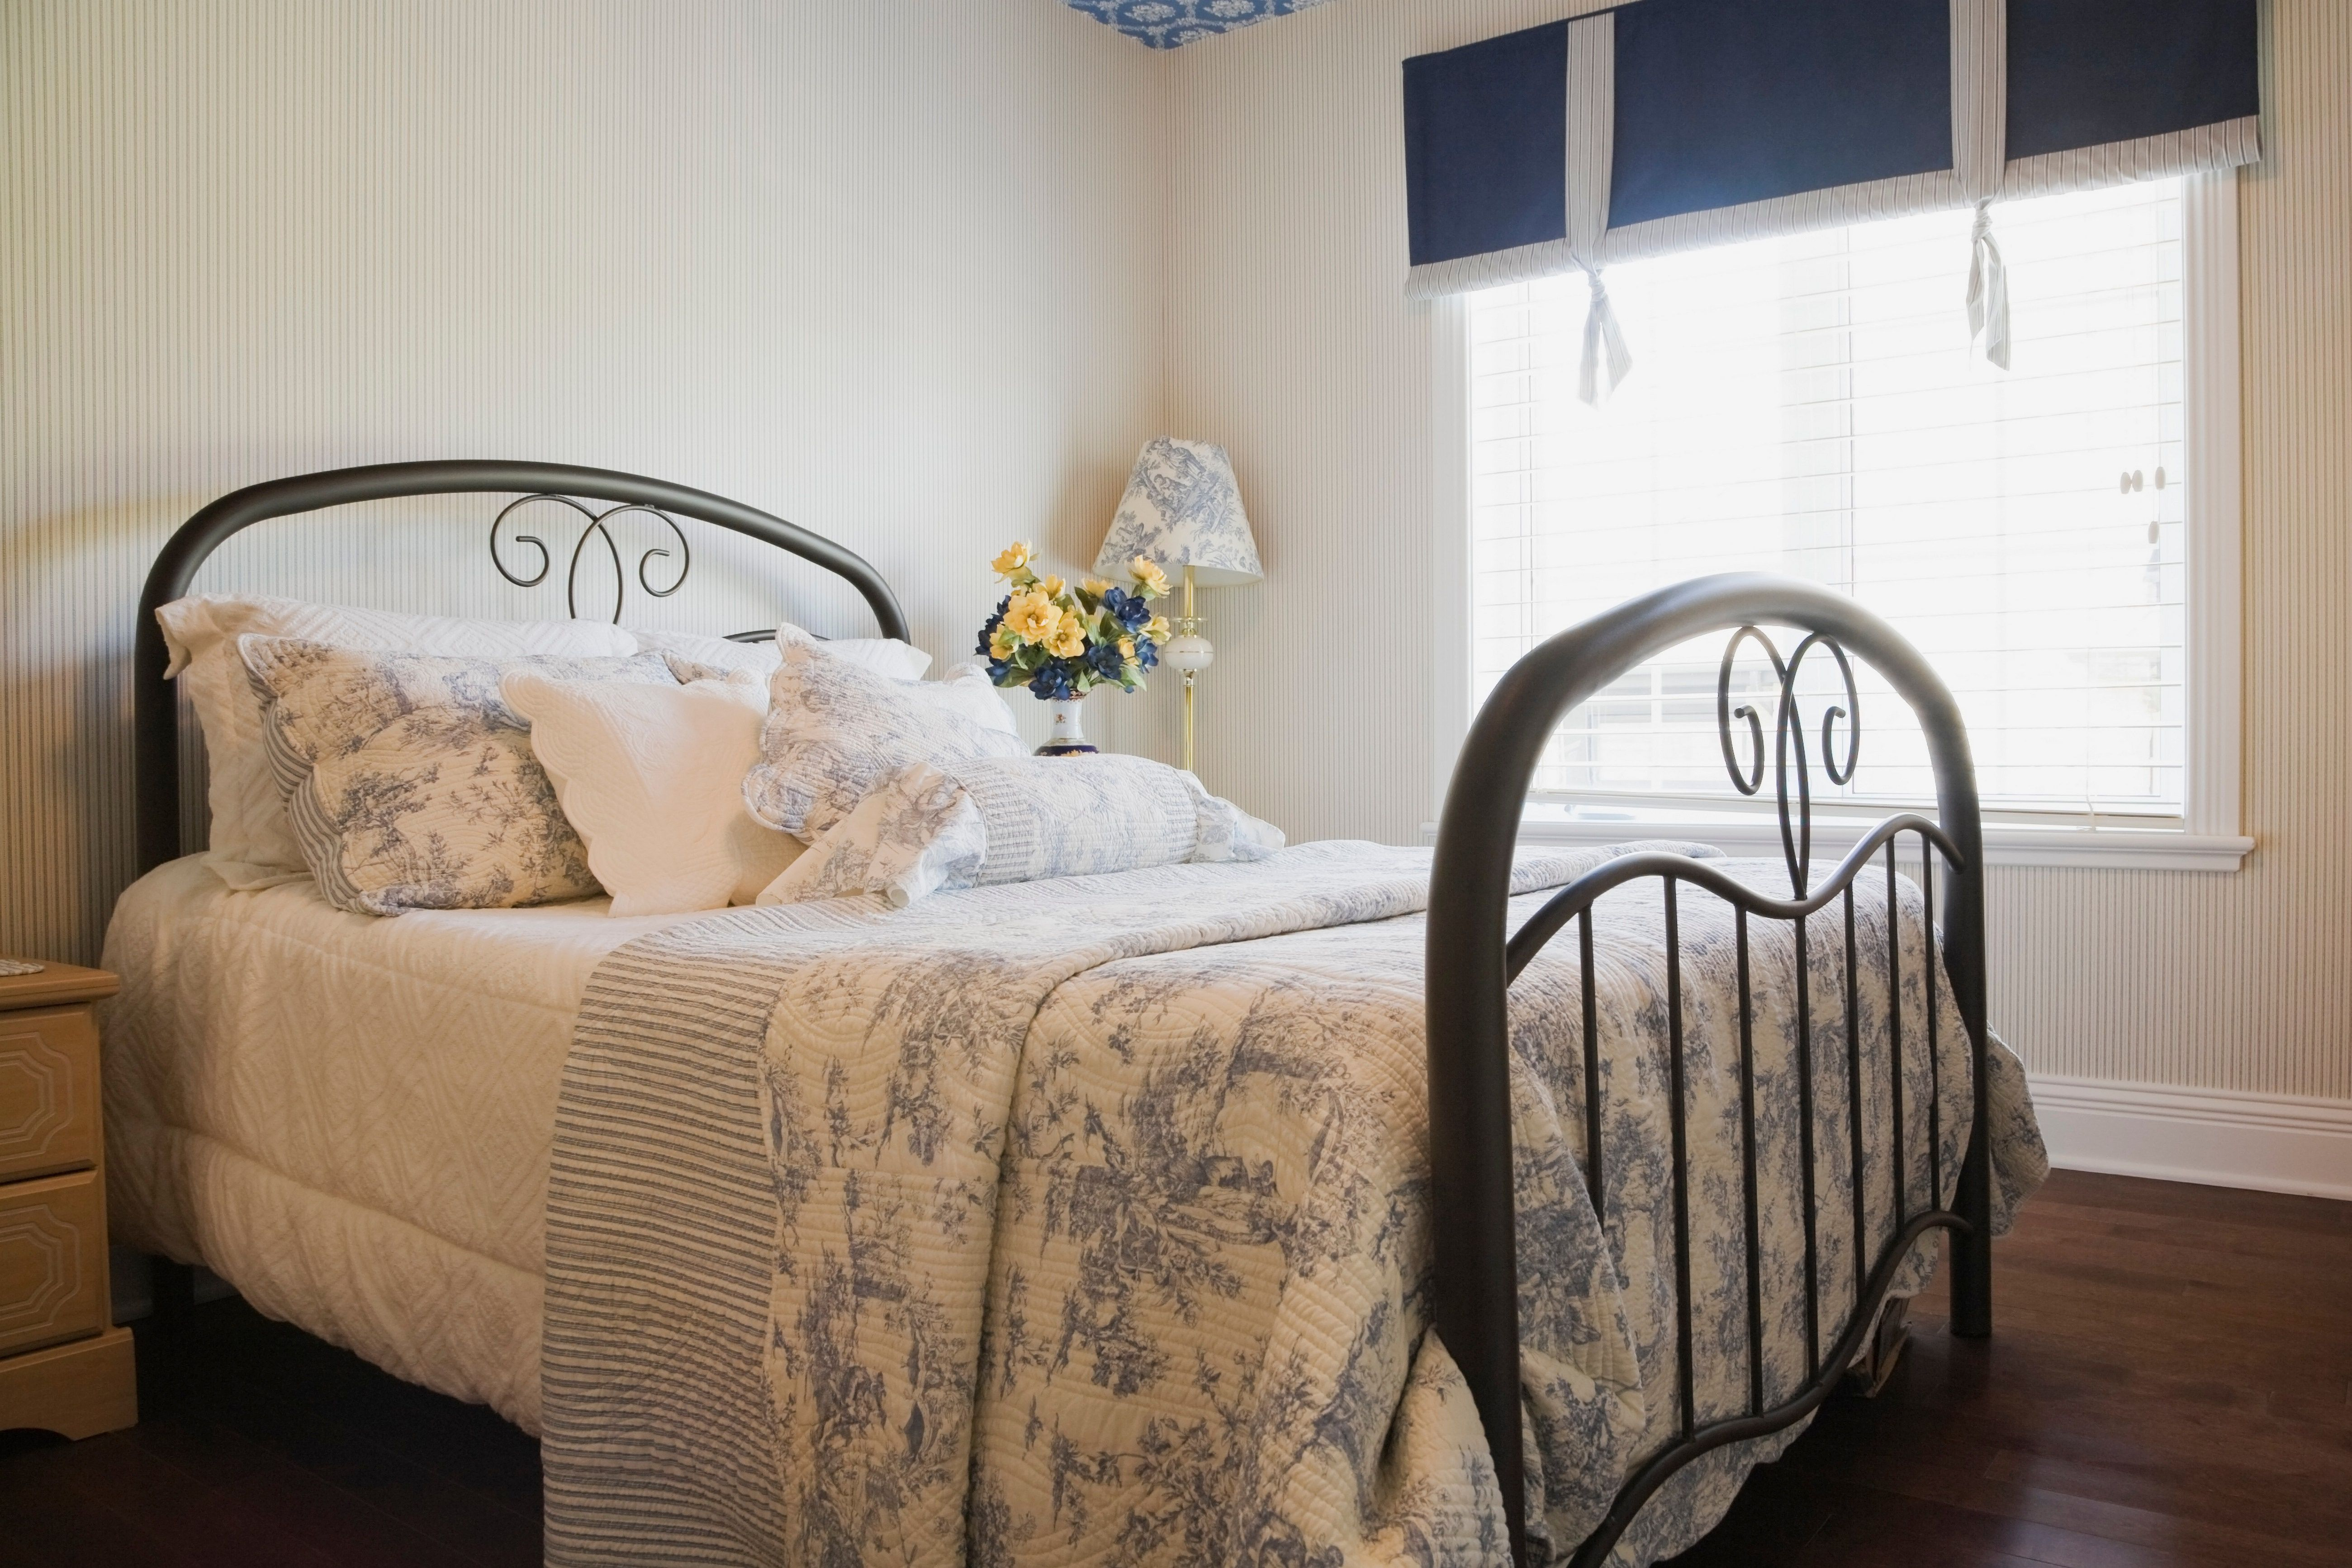 Shabby Chic bedroom with quilt and iron bed.